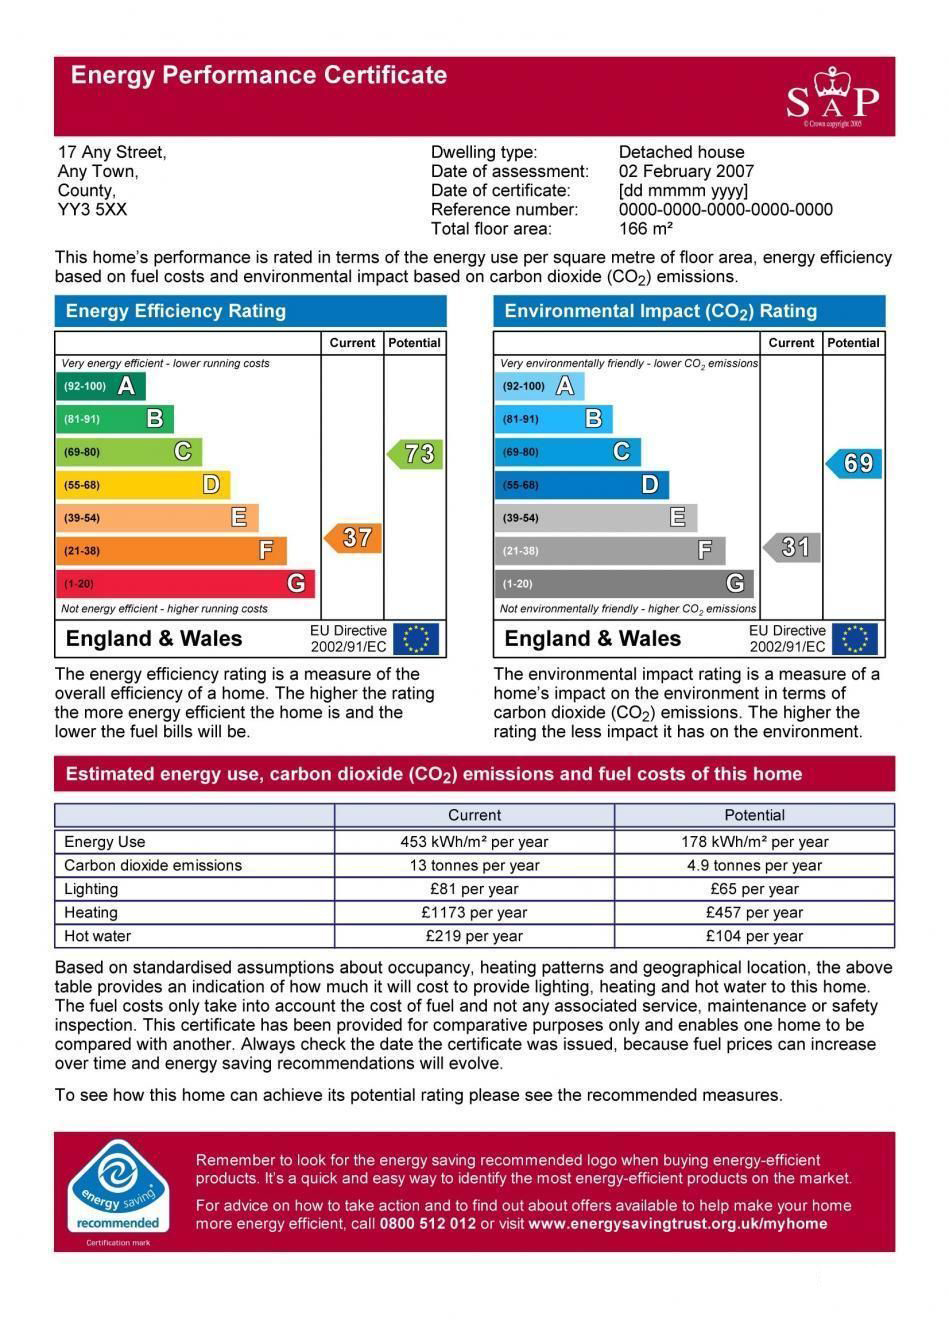 An example of an Energy Performance Certificate